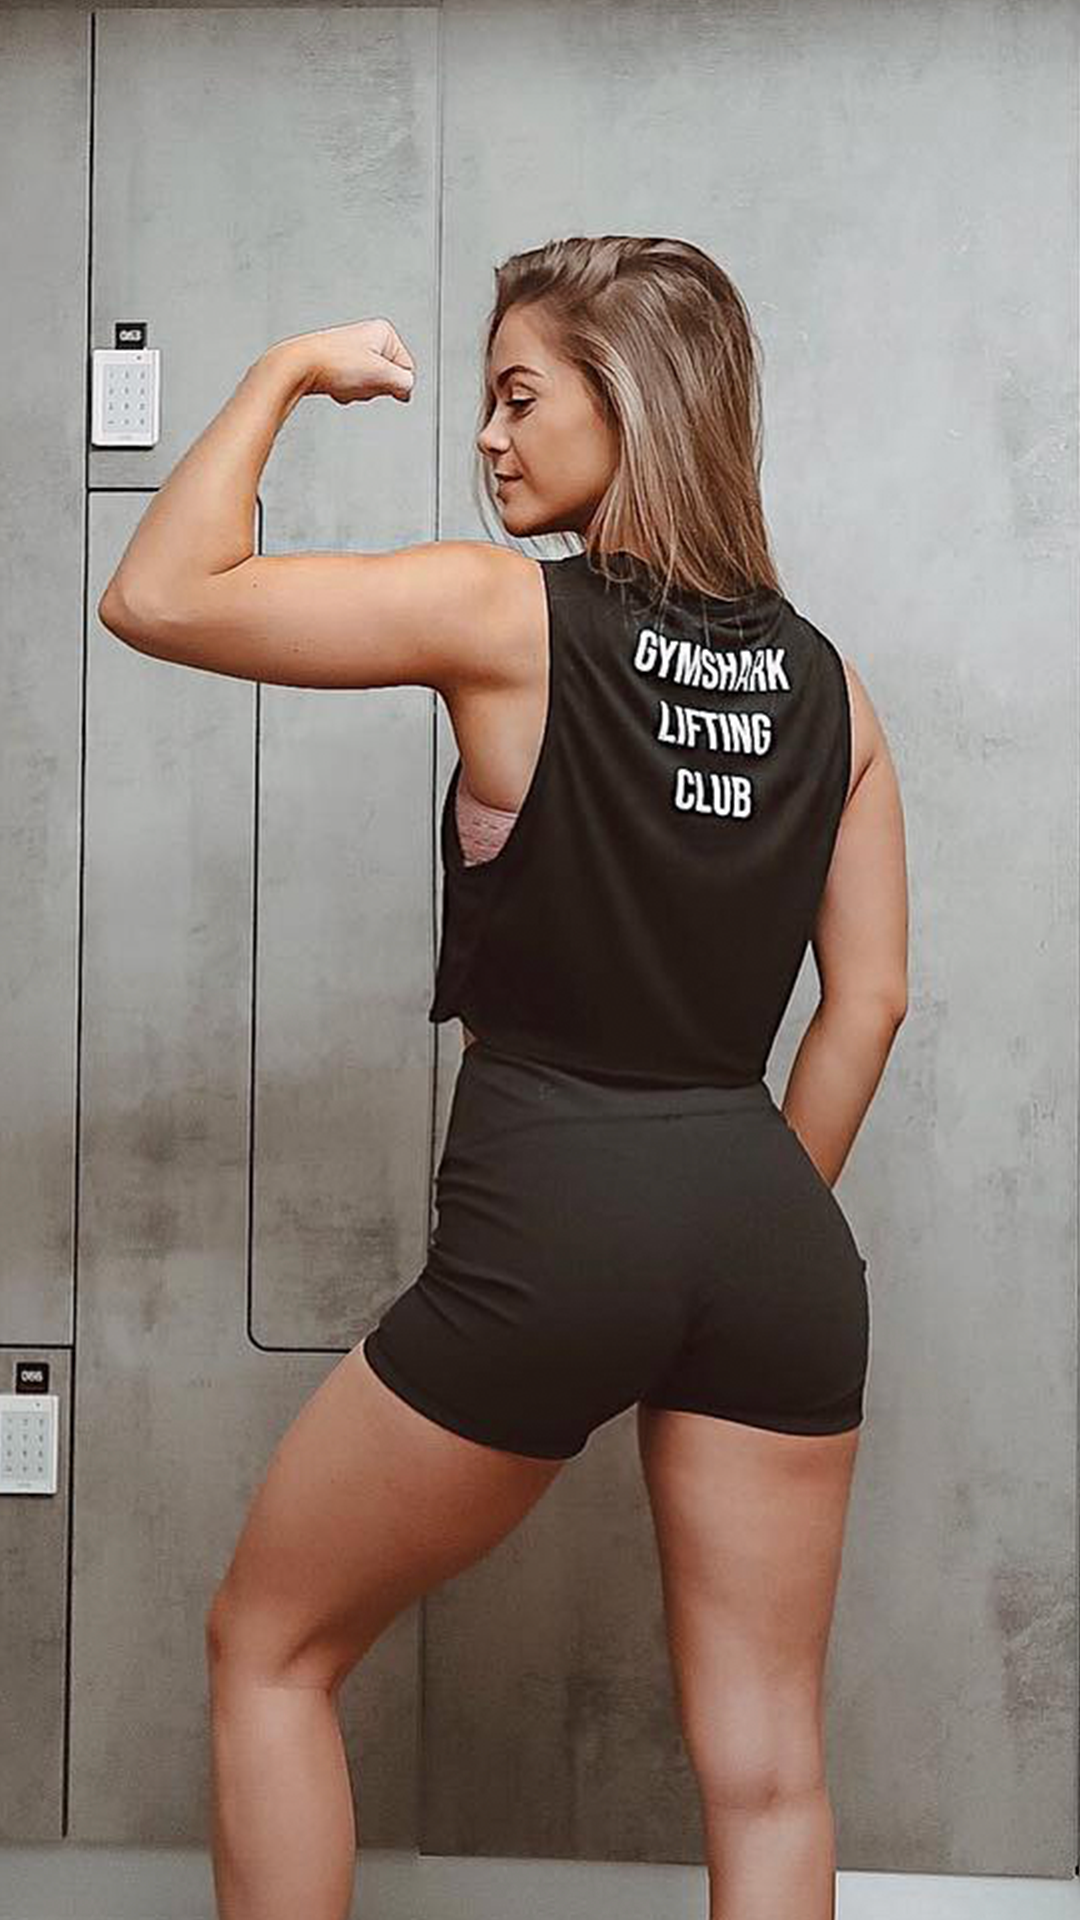 038b5940a9 The Gymshark Lifting Club.  Gymshark  Gym  Sweat  Train  Perform  Seamless   Exercise  Strength  Strong  Power  Fitness  OutfitInspiration  Womenswear   Chill ...